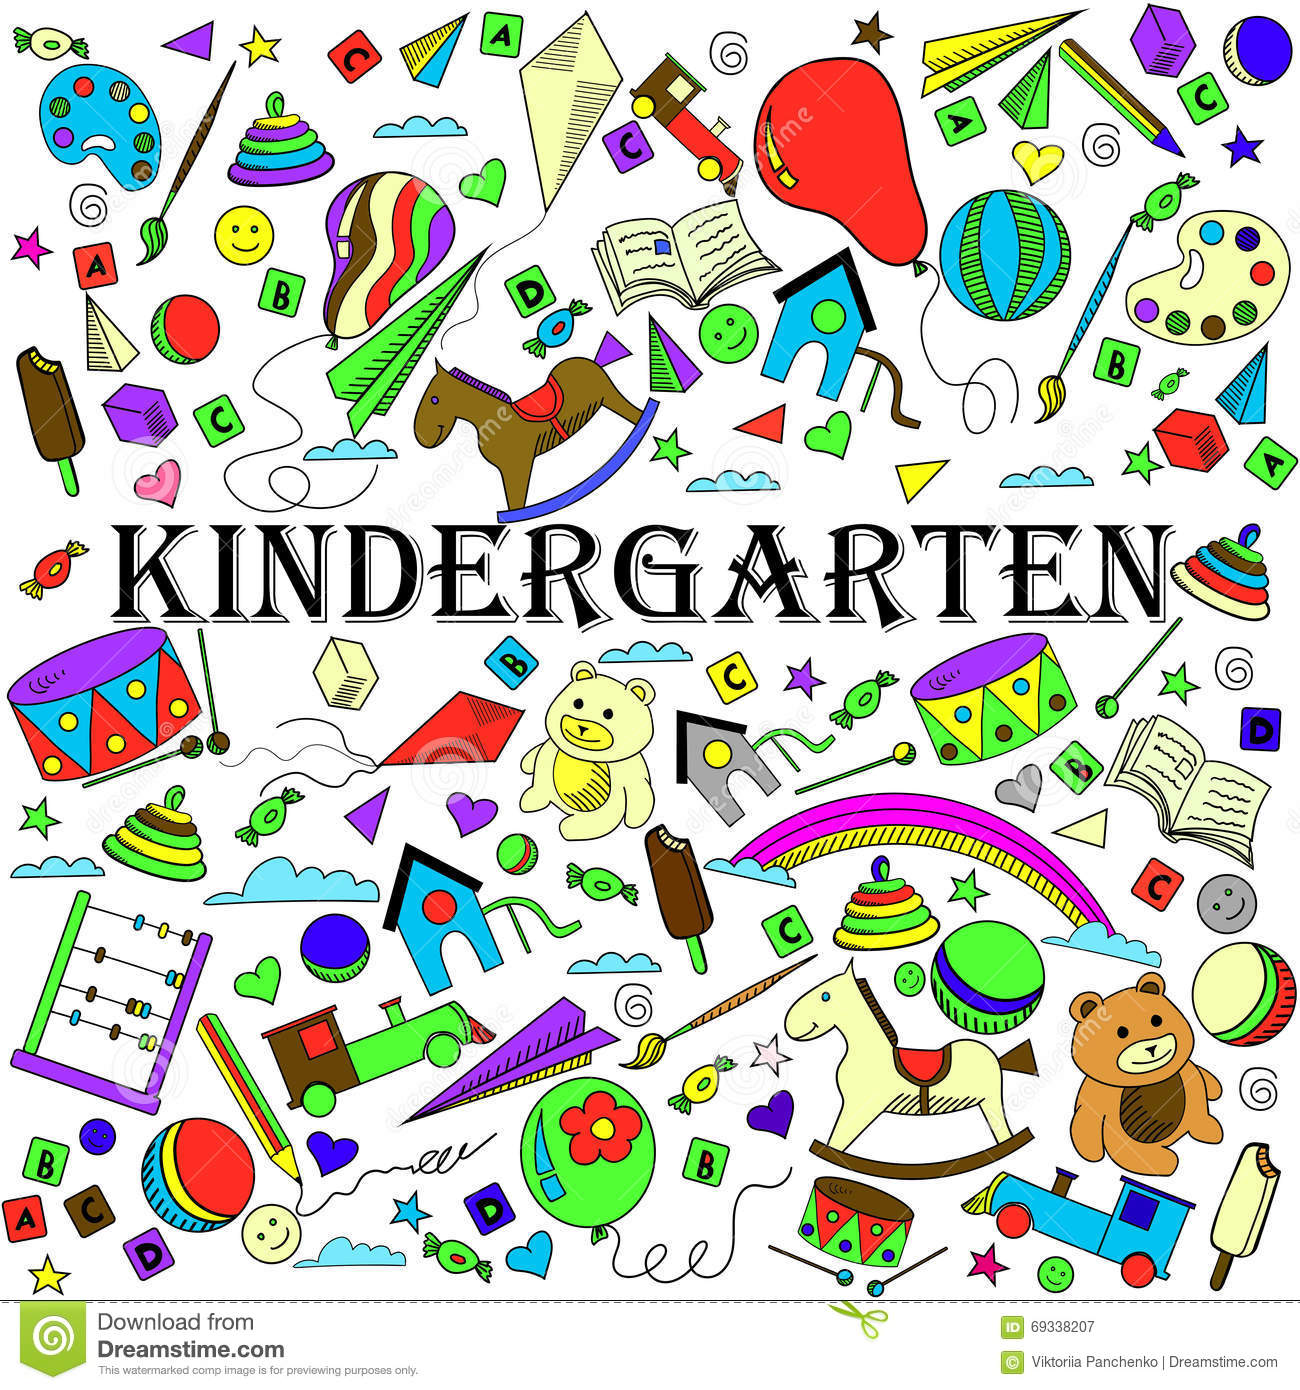 Line Drawing Kindergarten : Doodle vector kindergarten elements cartoon